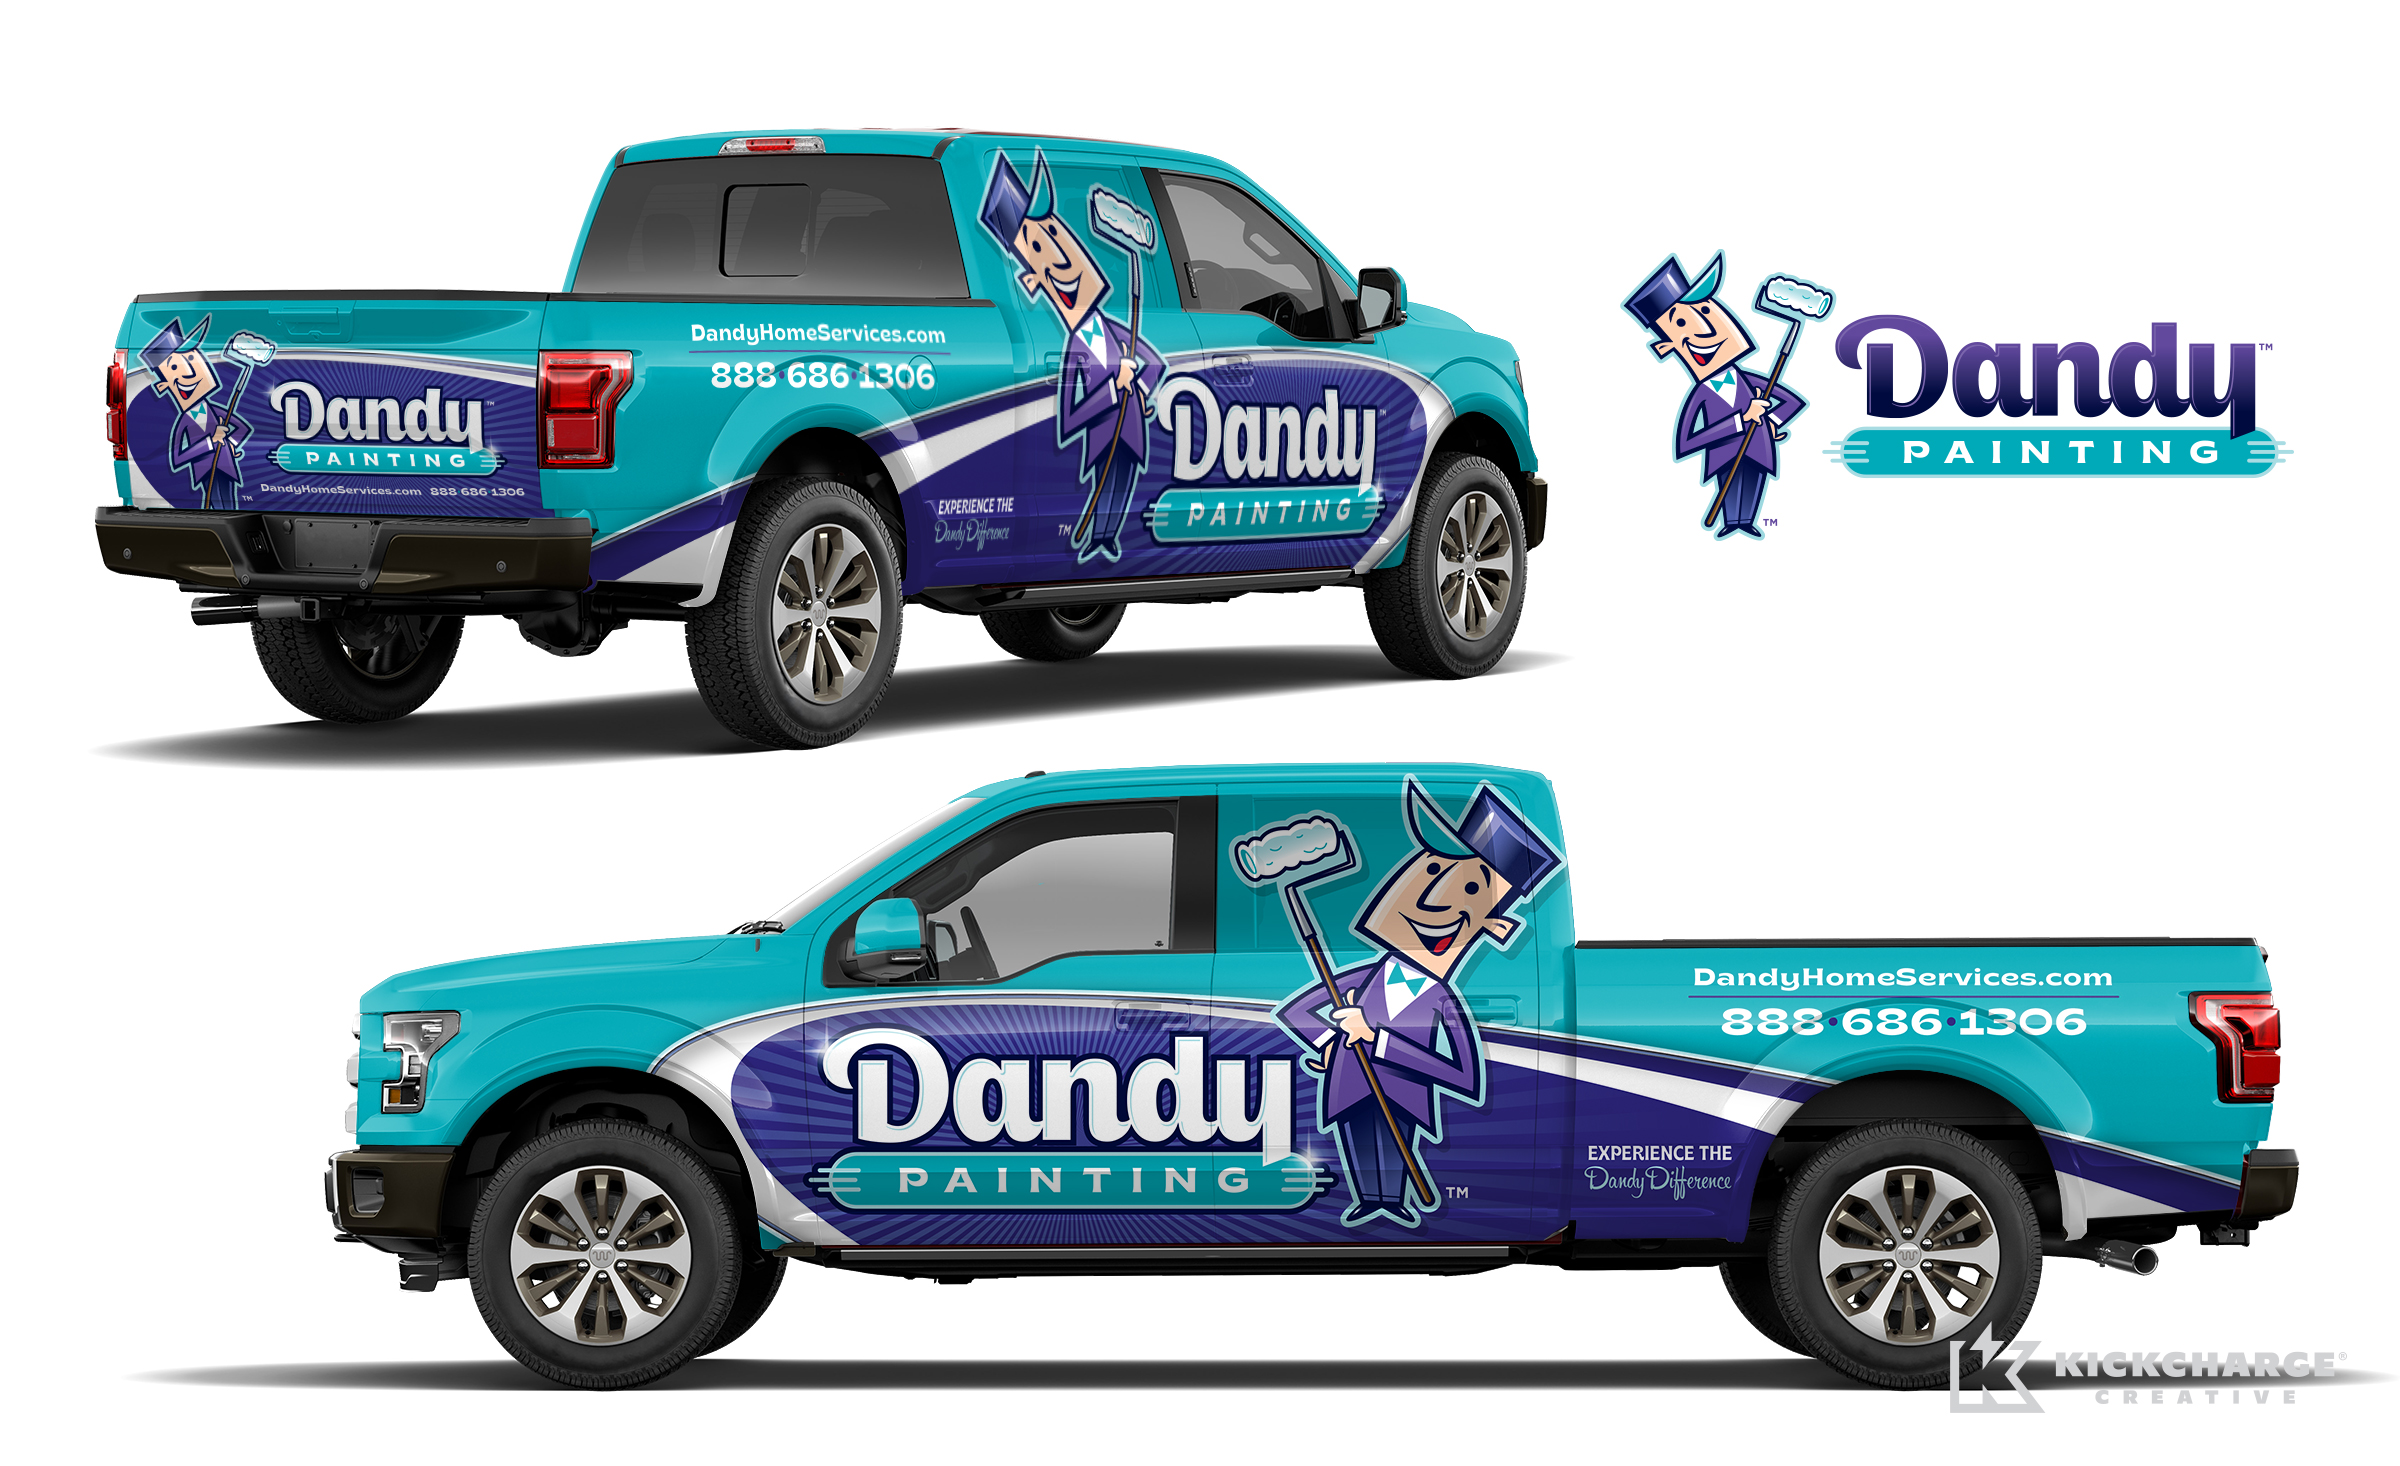 Dandy Painting truck wrap, painting company truck wrap